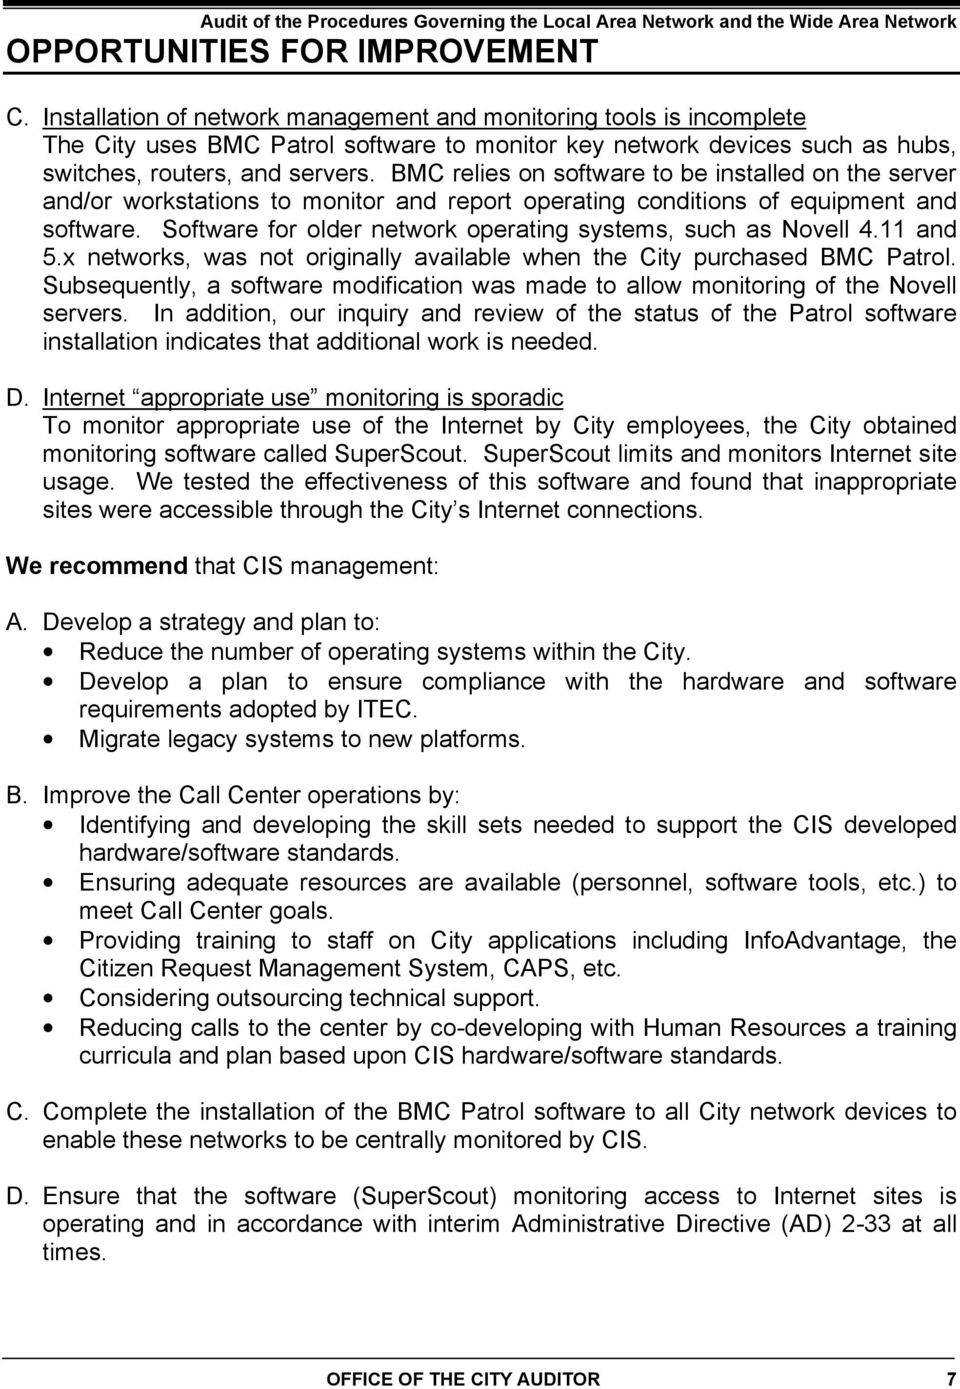 Software for older network operating systems, such as Novell 4.11 and 5.x networks, was not originally available when the City purchased BMC Patrol.